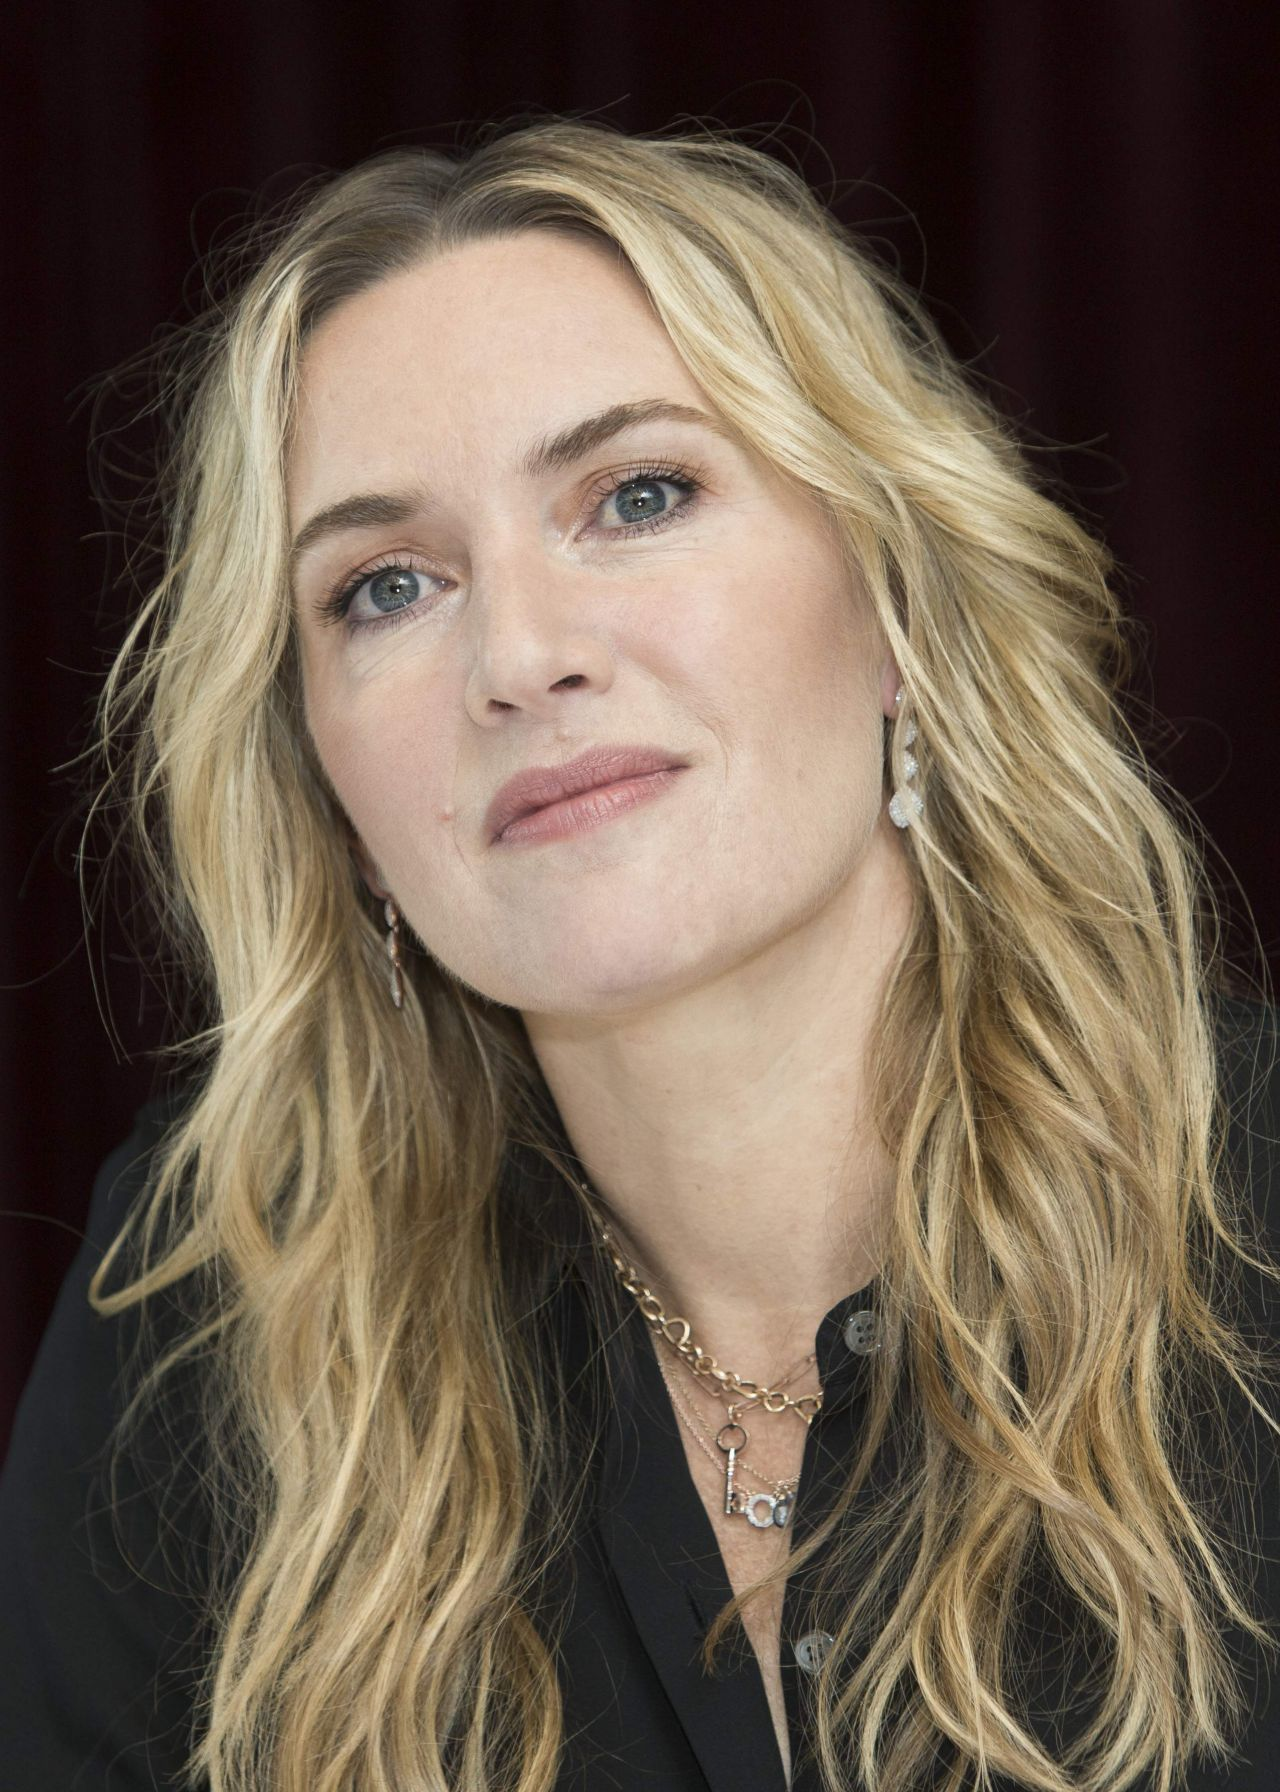 Kate Winslet U0026quot The Mountain Between Us U0026quot PhotoCall In